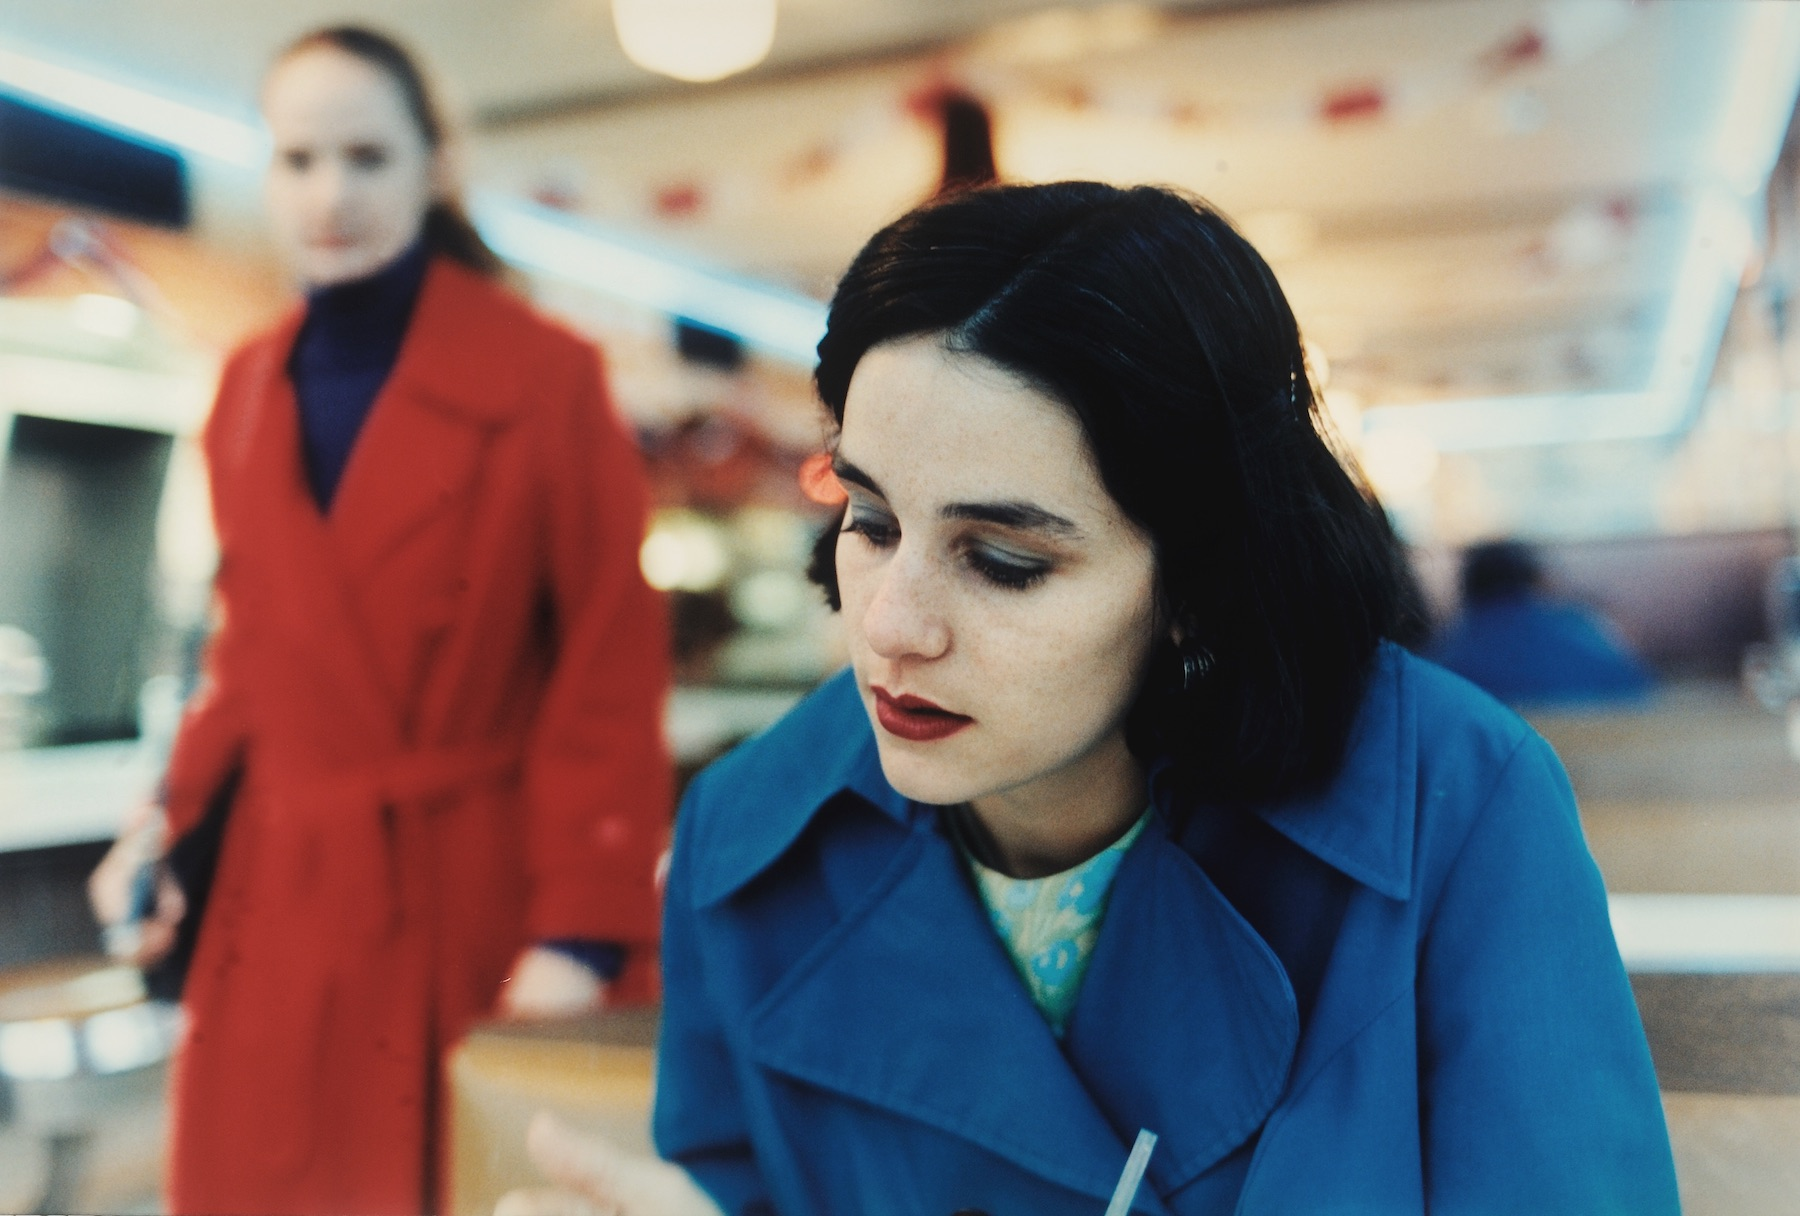 Two women, in blue and red coats